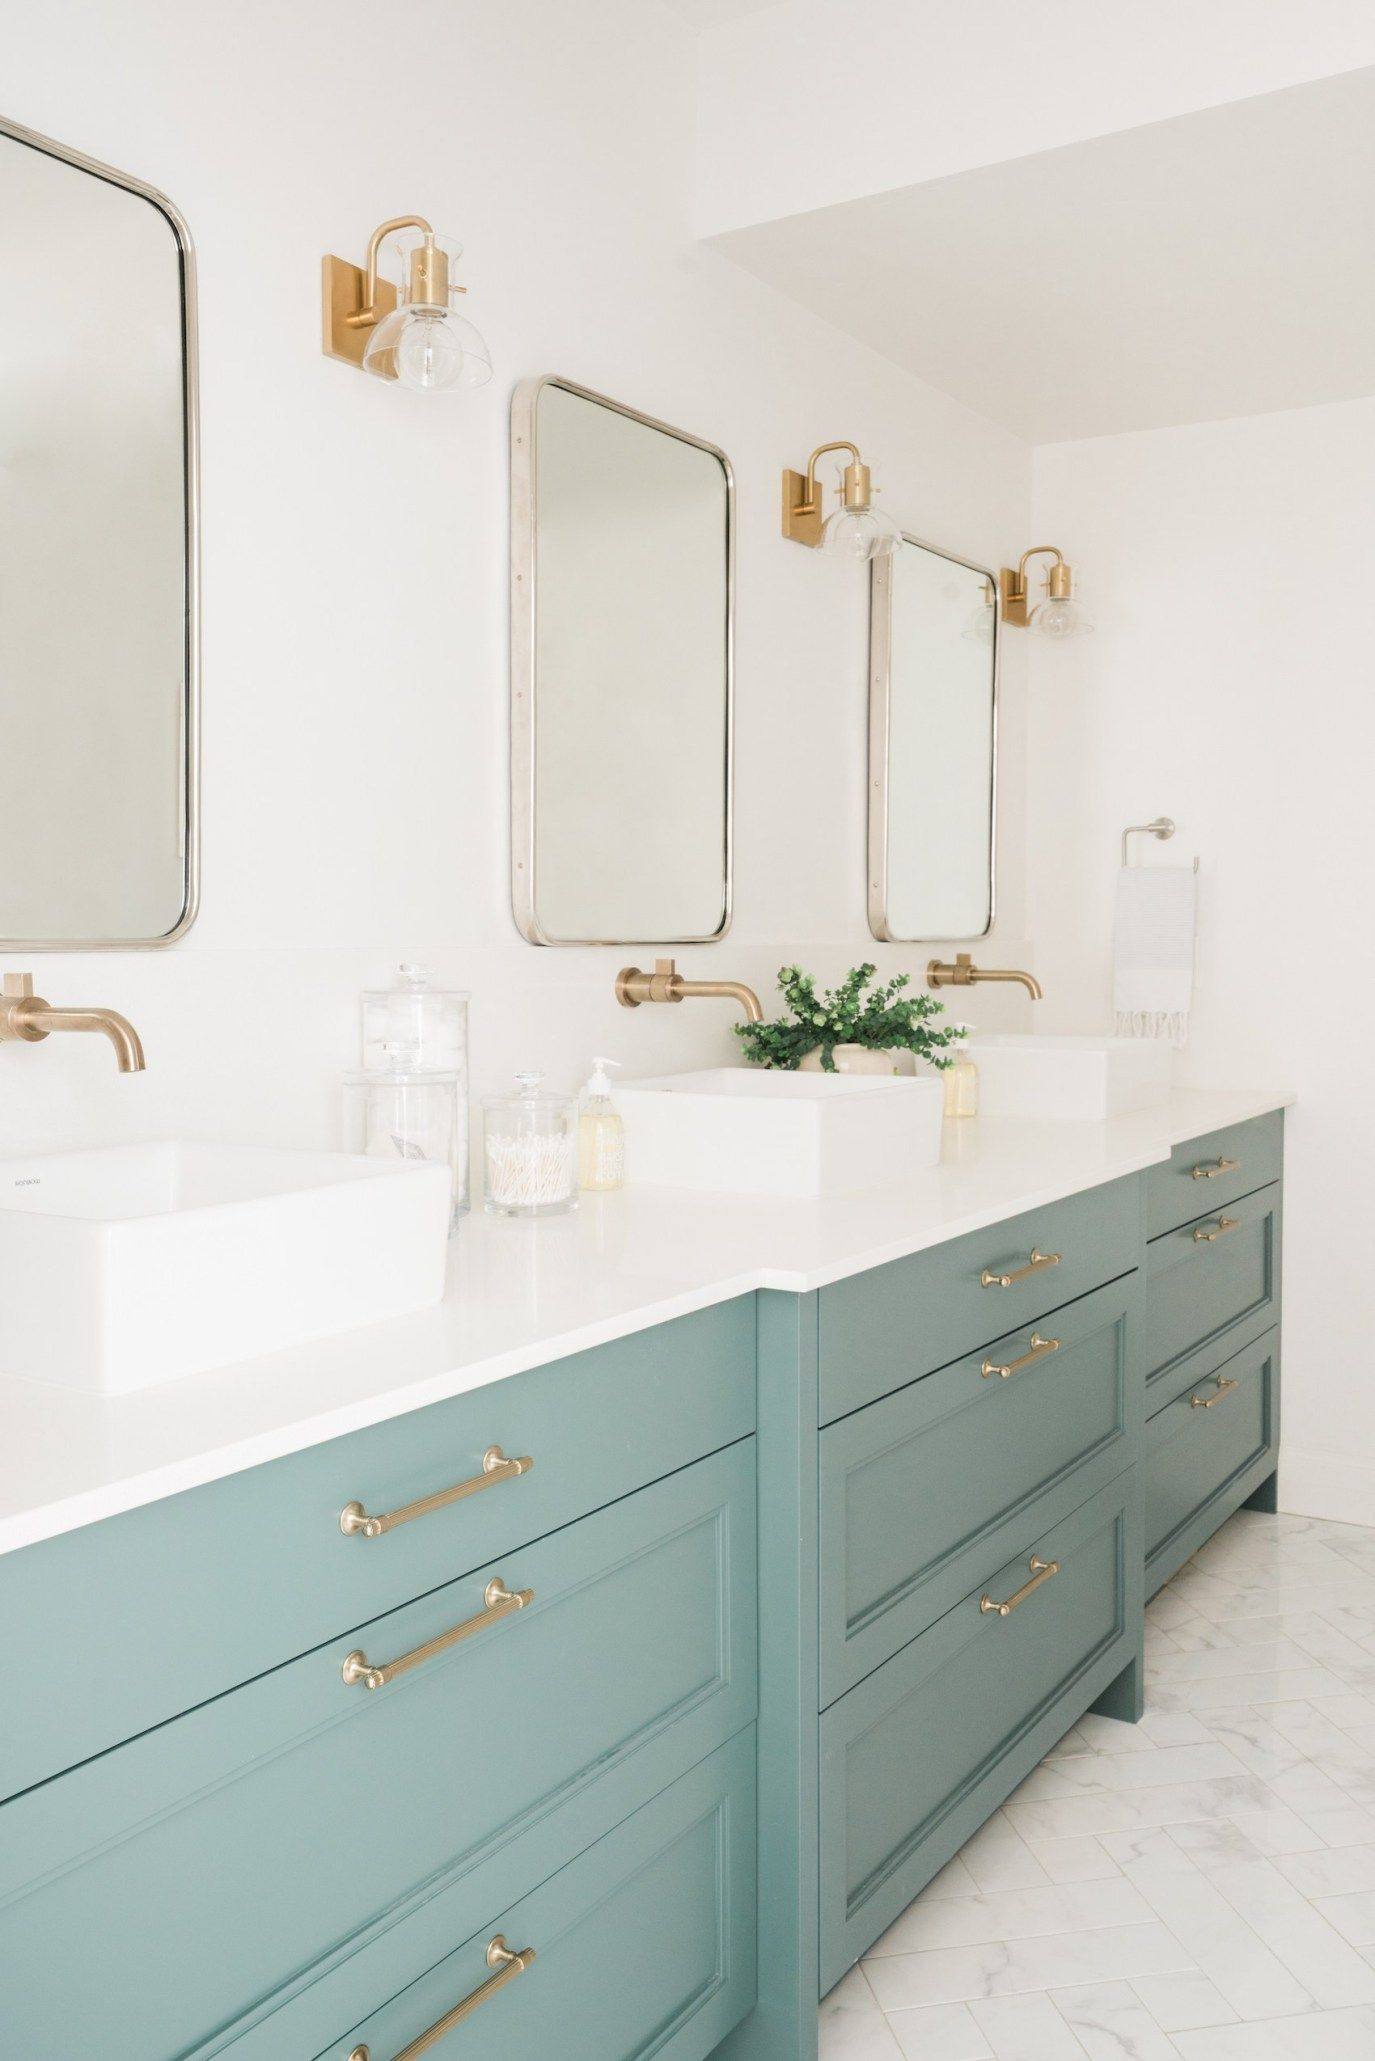 Bathroom Makeover Ideas And Inspiration Life And Style Fynes Designs Bathroom Cabinets Designs Green Bathroom Mint Green Bathrooms